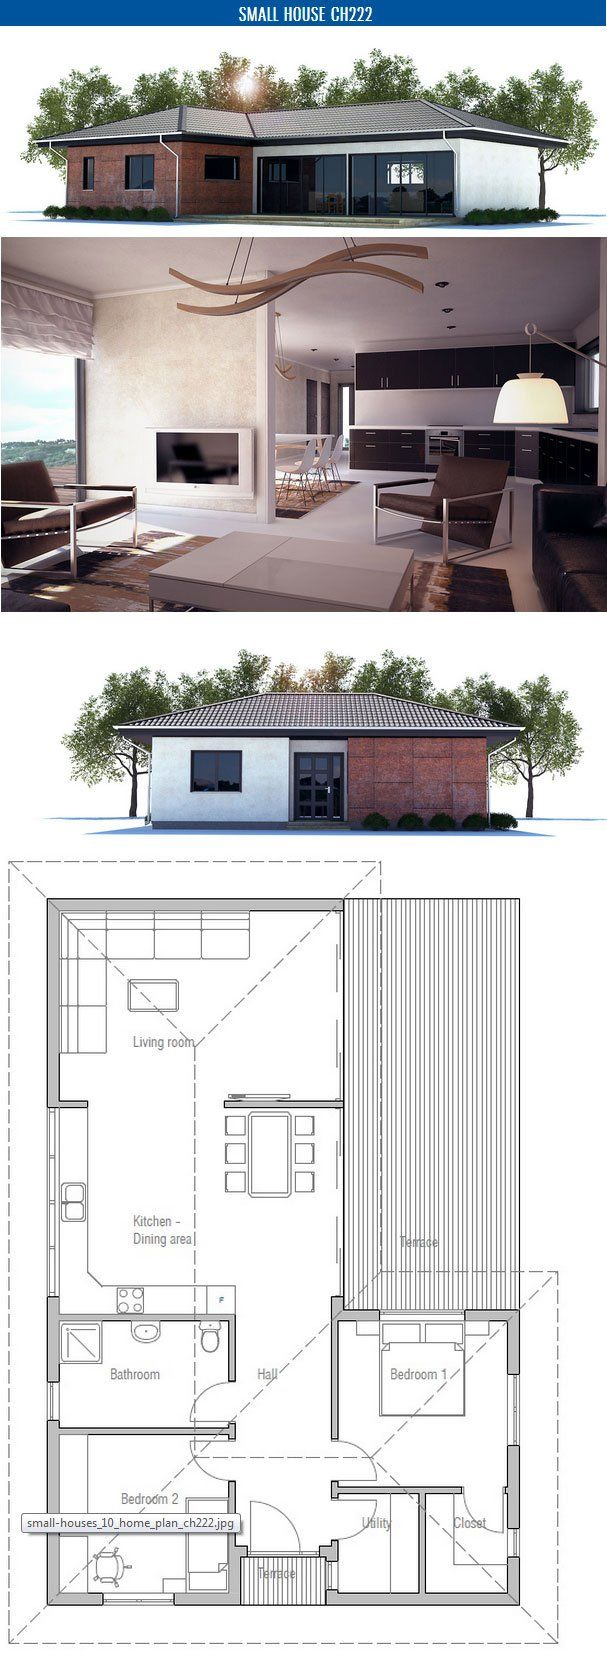 67 best floor plans images on pinterest architecture small small house plan to narrow lot with two bedrooms open plan vaulted ceiling in